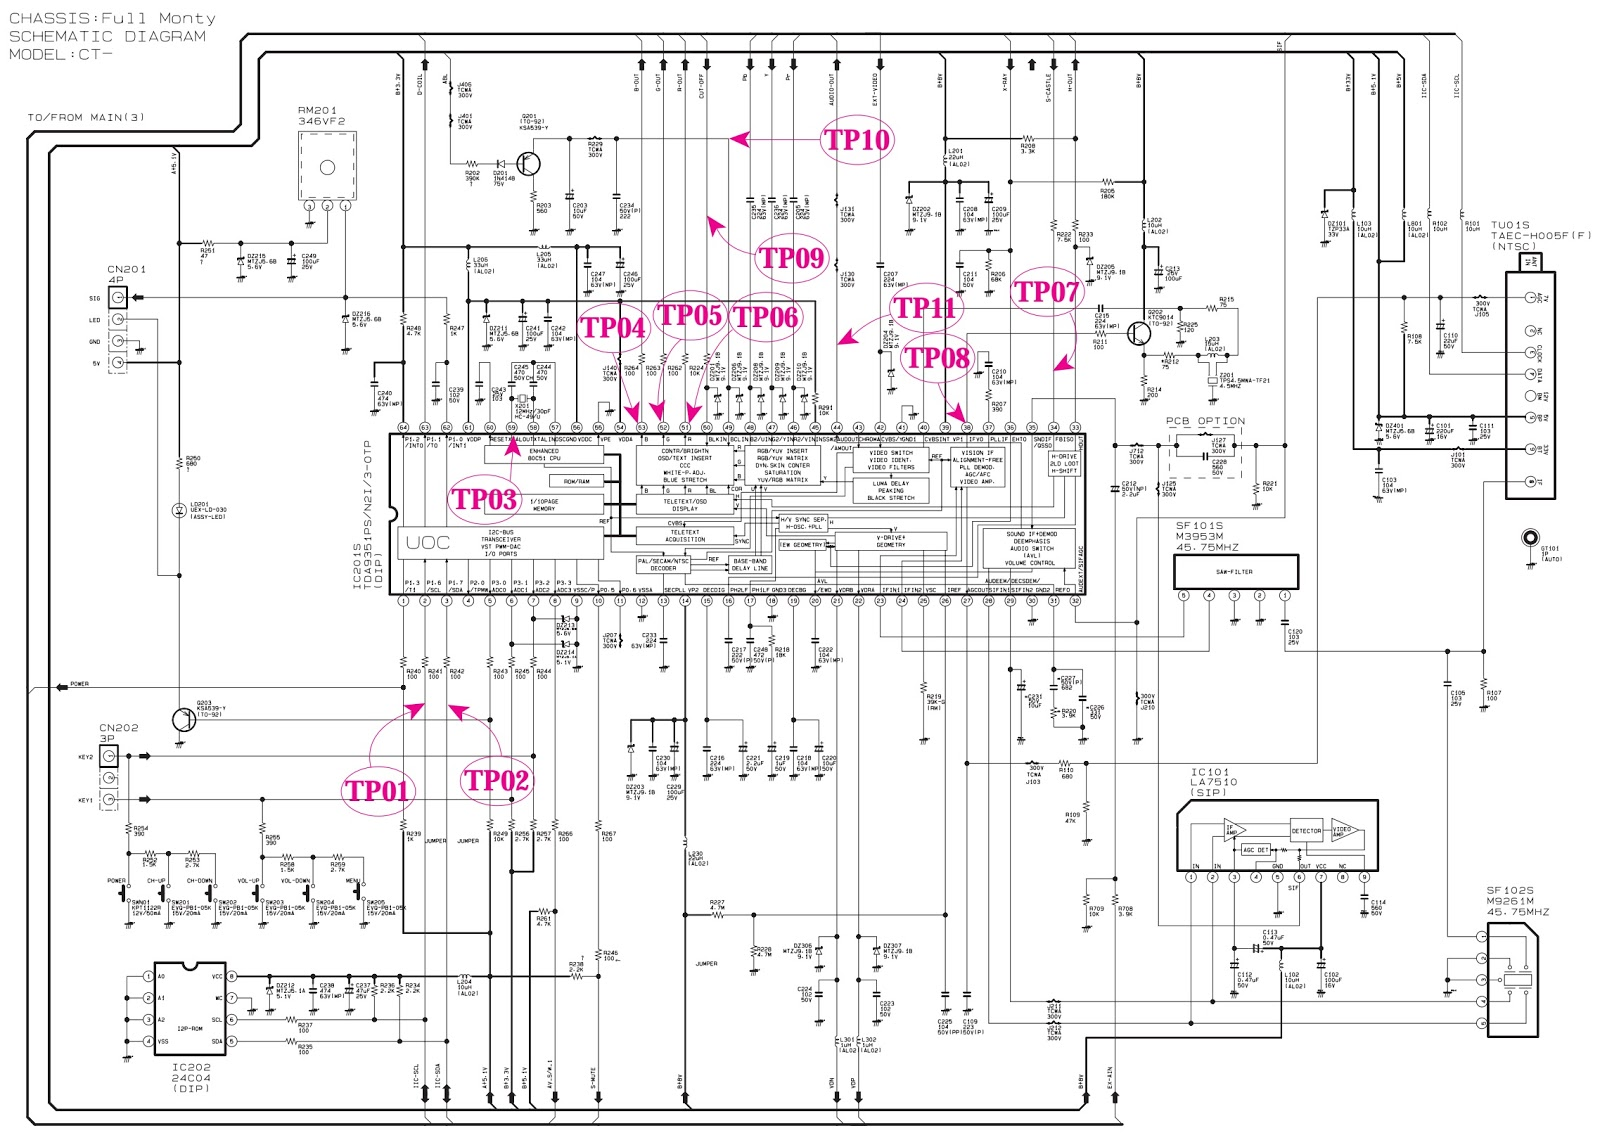 Wiring Diagram For Doosan Puma 10hc,Diagram